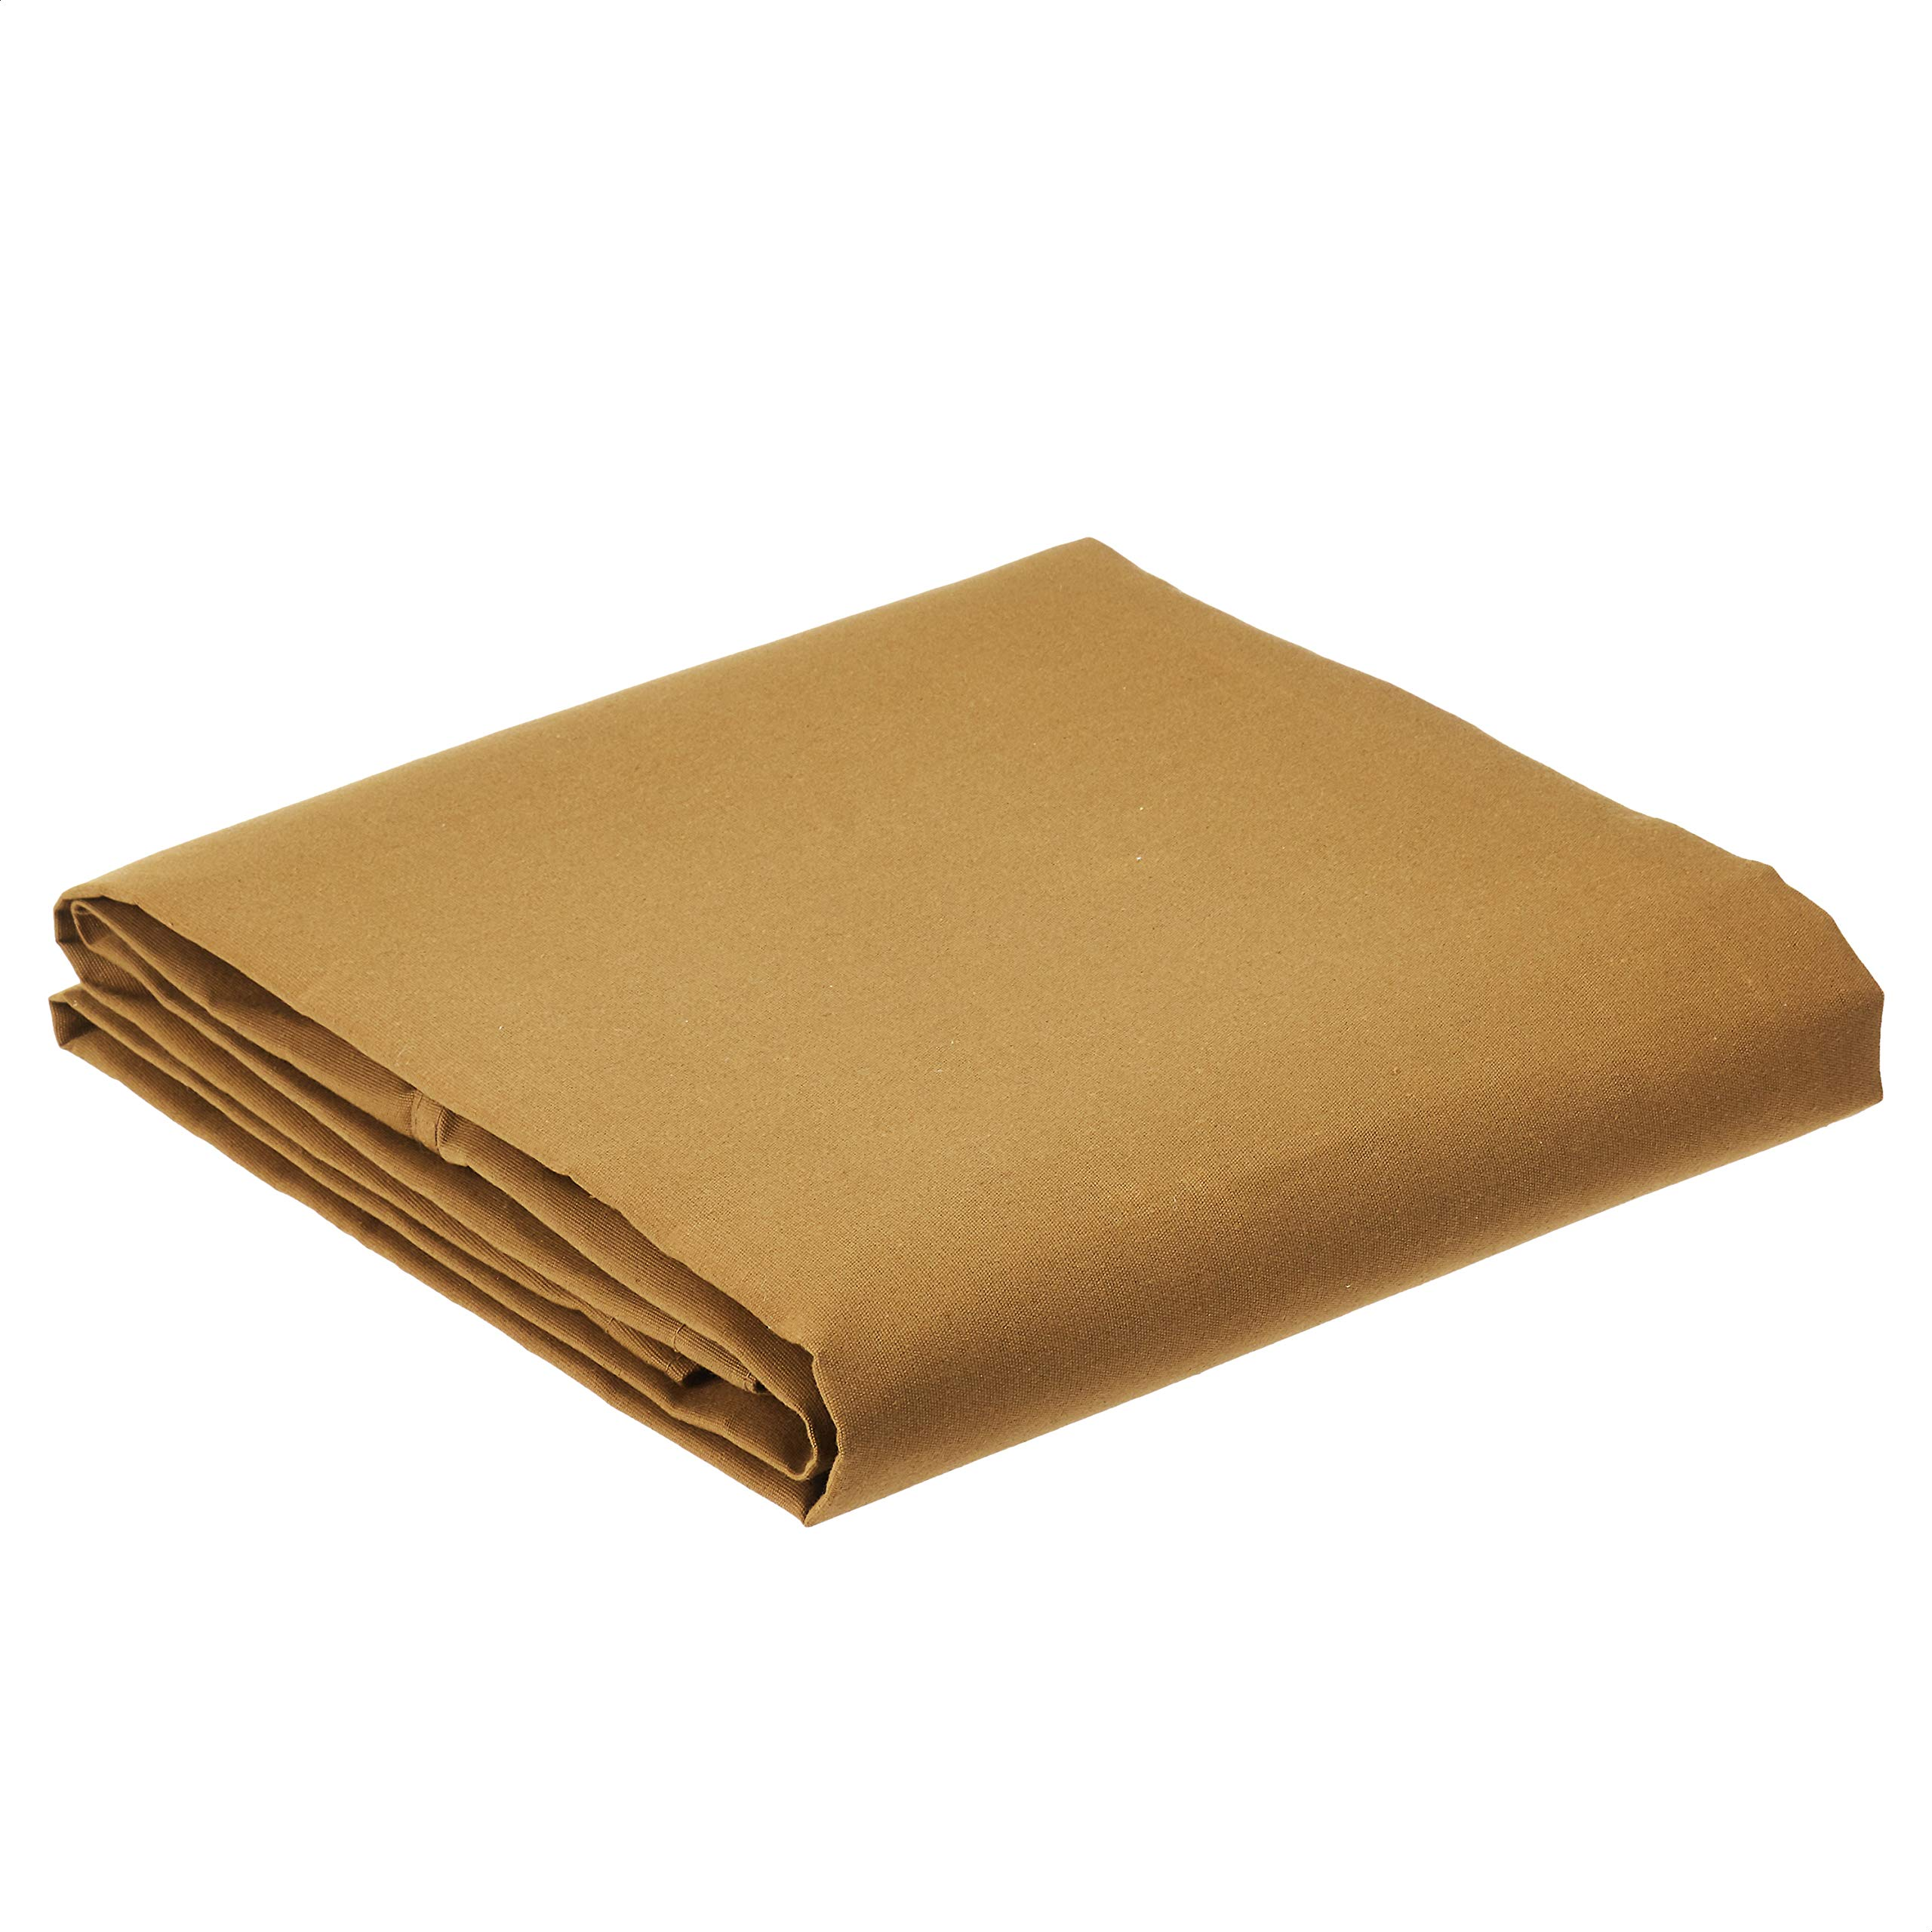 AmazonCommercial Heavy Duty Water Resistant Canvas Tarp, Tan, 12x20ft, 1-Pack